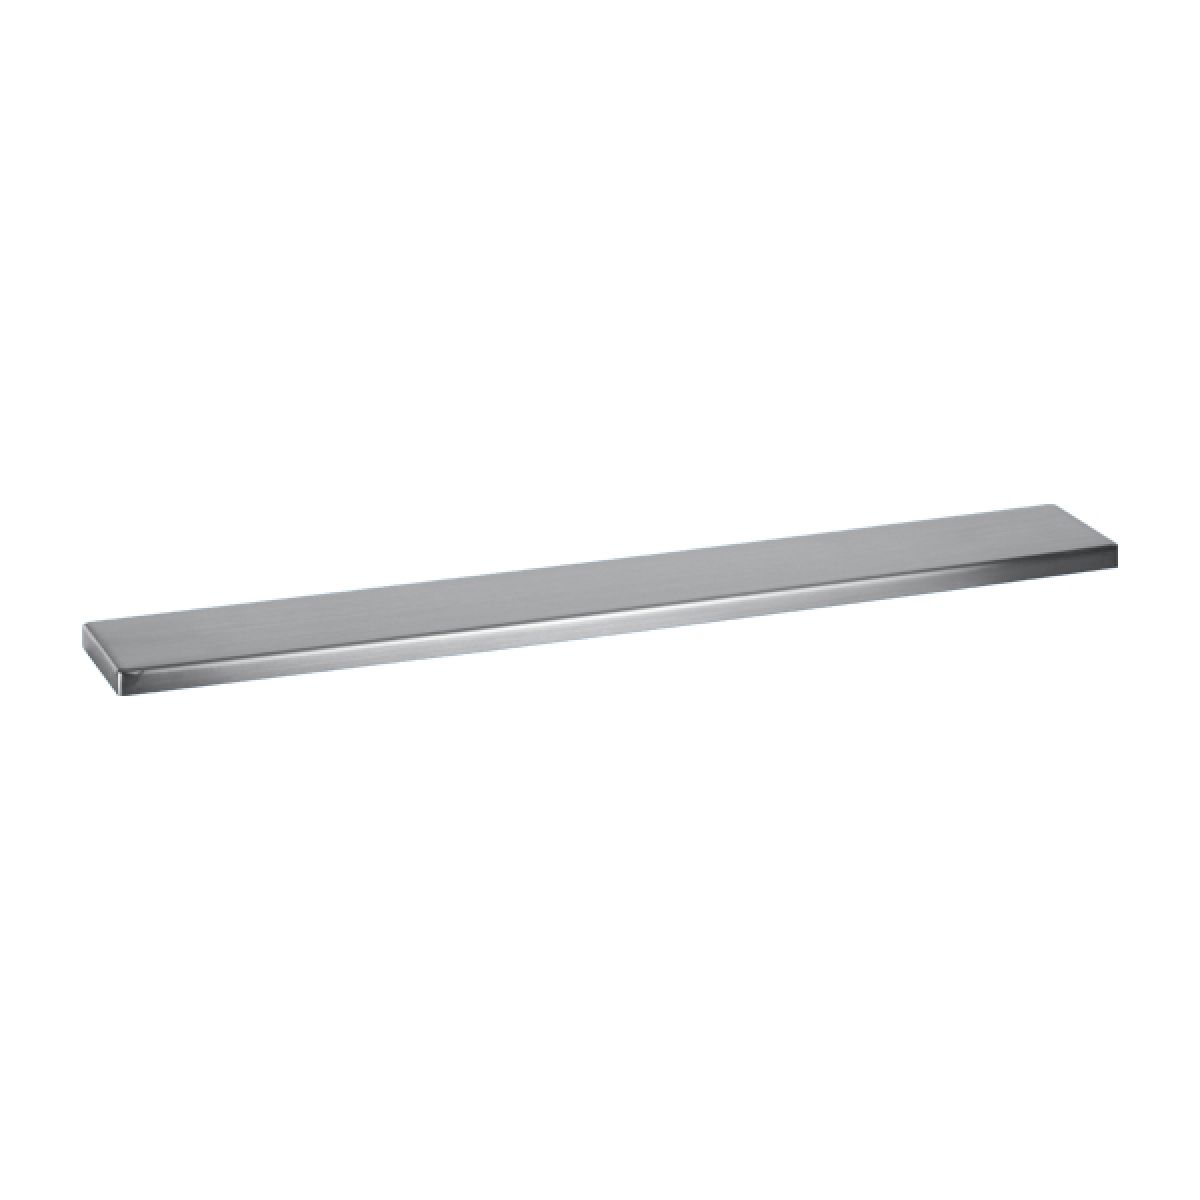 McAlpine COV600-B 600mm Channel Drain Brushed Cover Plate